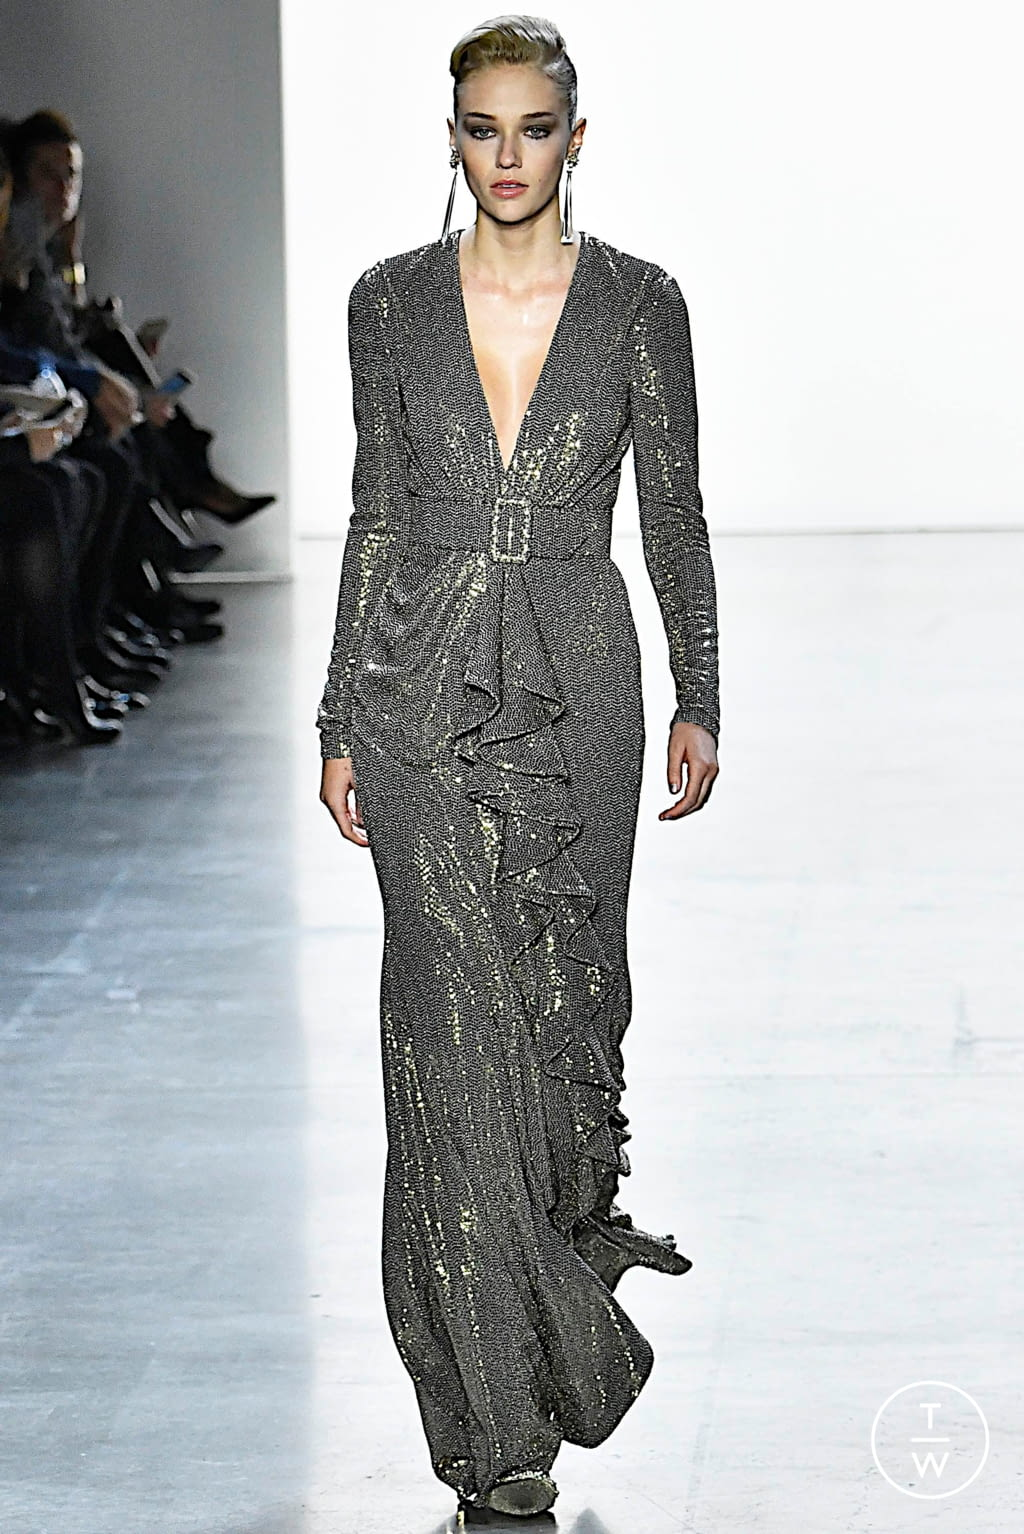 Fashion Week New York Fall/Winter 2019 look 7 from the Badgley Mischka collection 女装